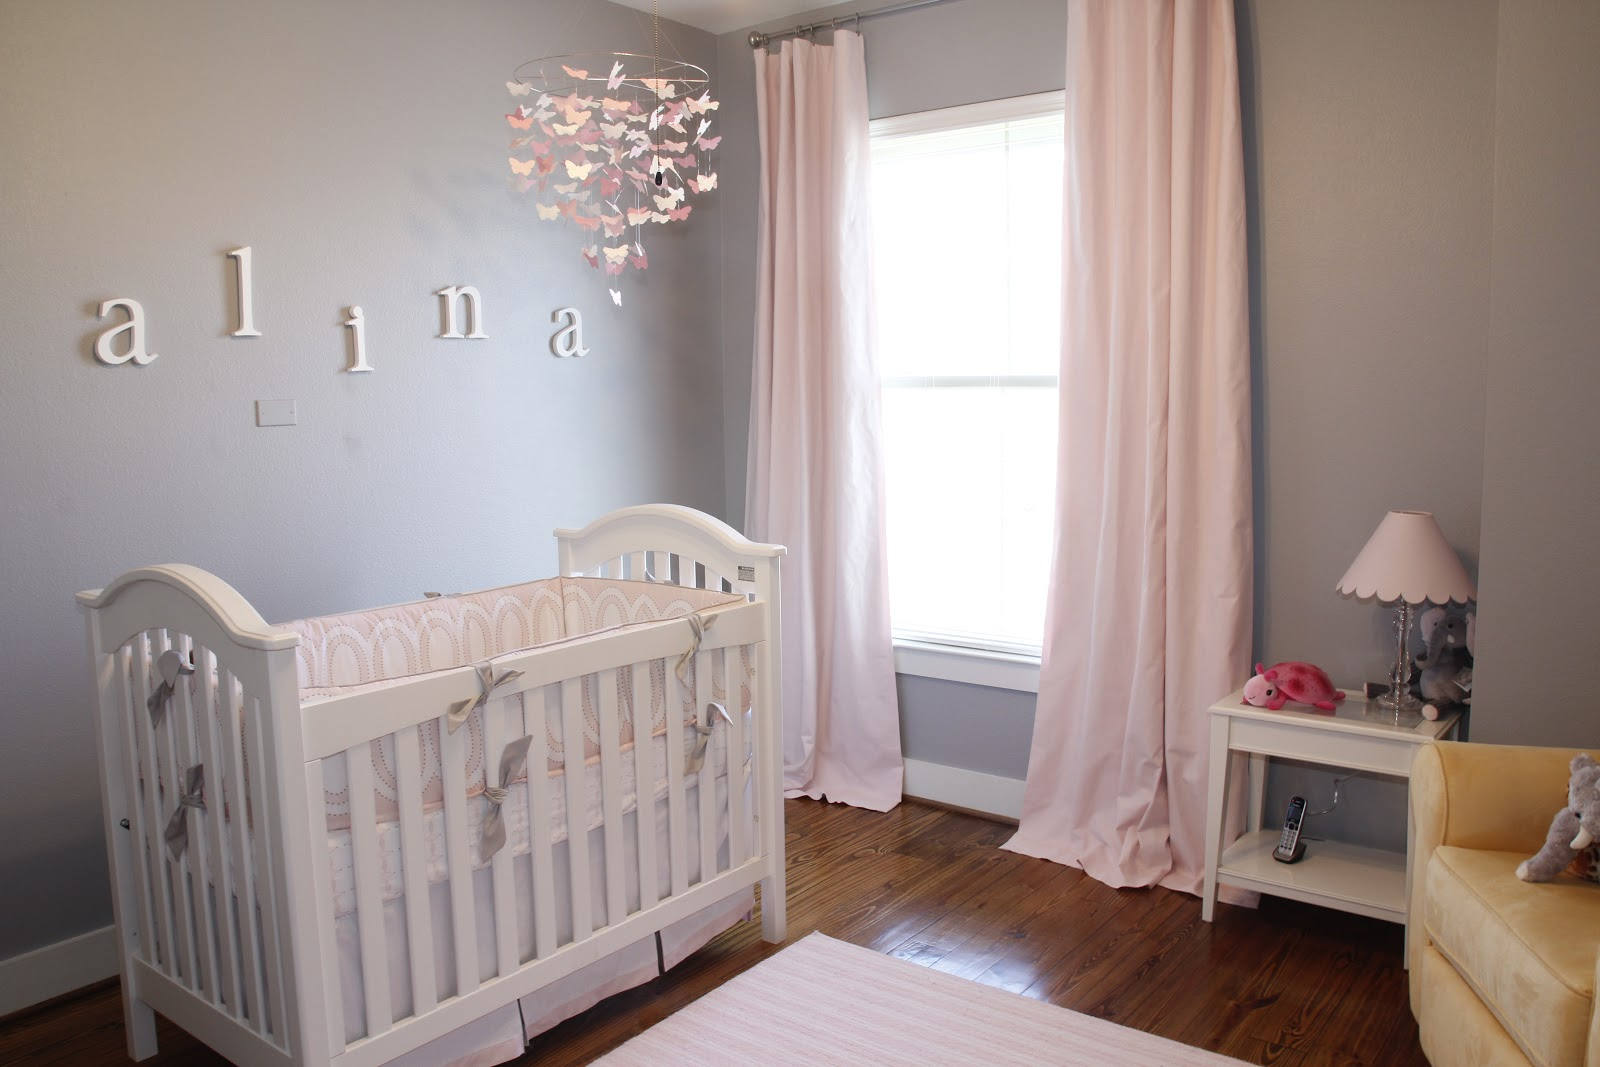 Shary's Photography Blog: Alina's Pink and Gray Baby Nursery